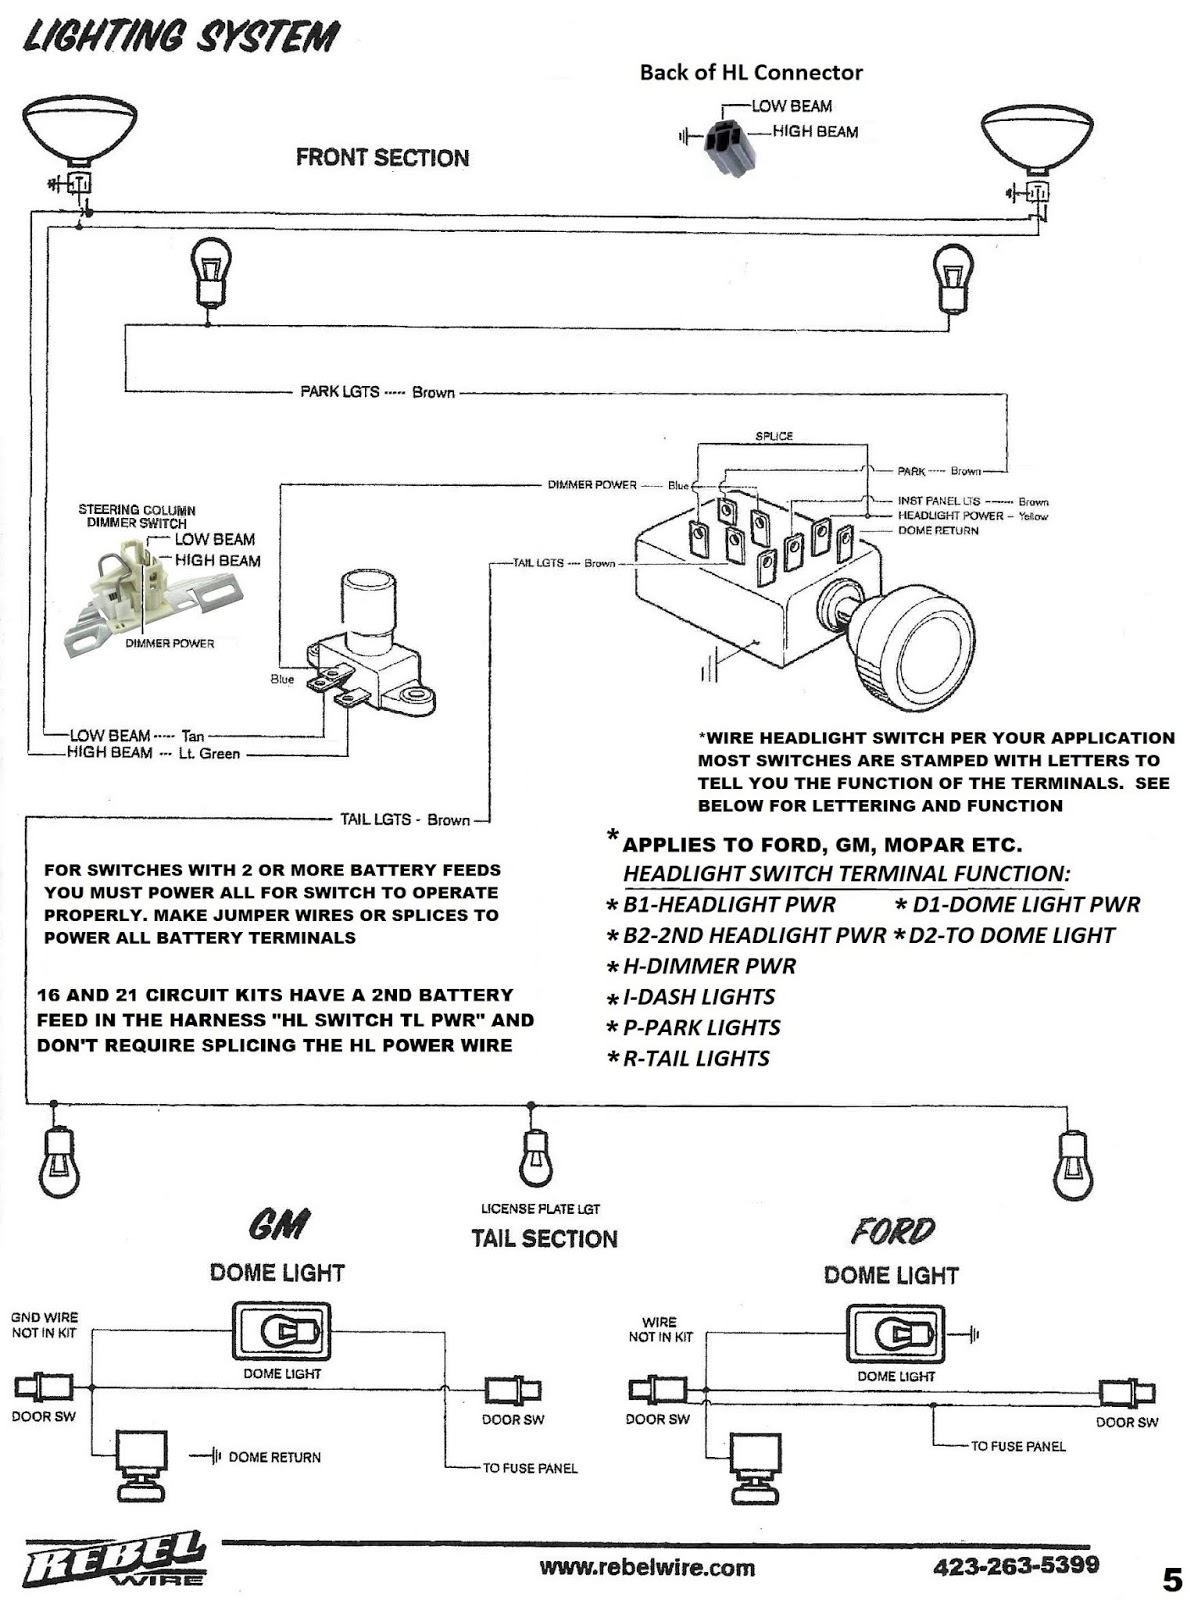 Auto Dimmer Switch Wiring Diagram - Mercedes Benz E320 Fuse Box Layout for Wiring  Diagram SchematicsWiring Diagram Schematics